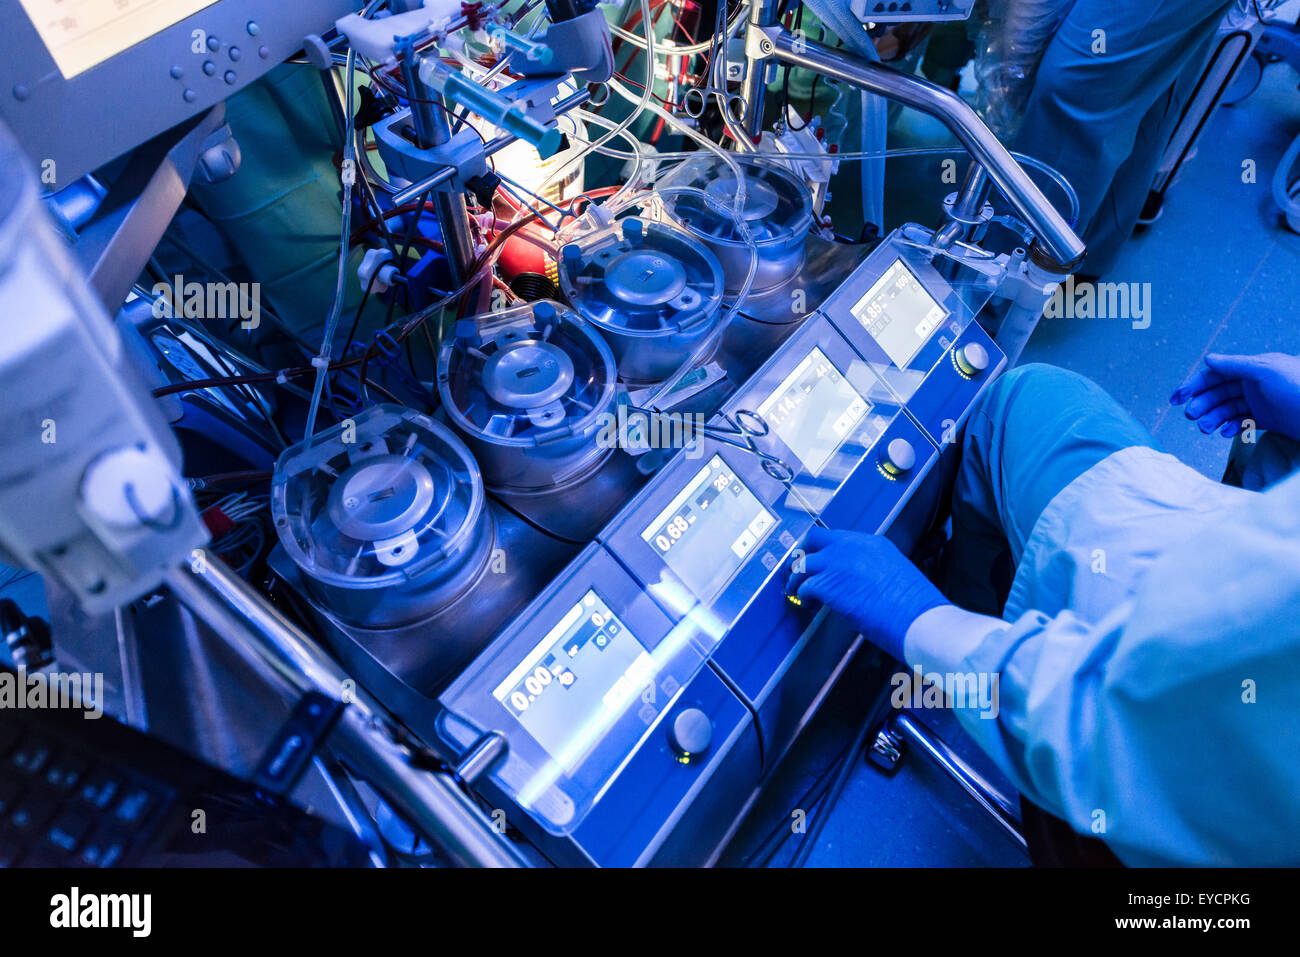 Heart-lung machine - Stock Image